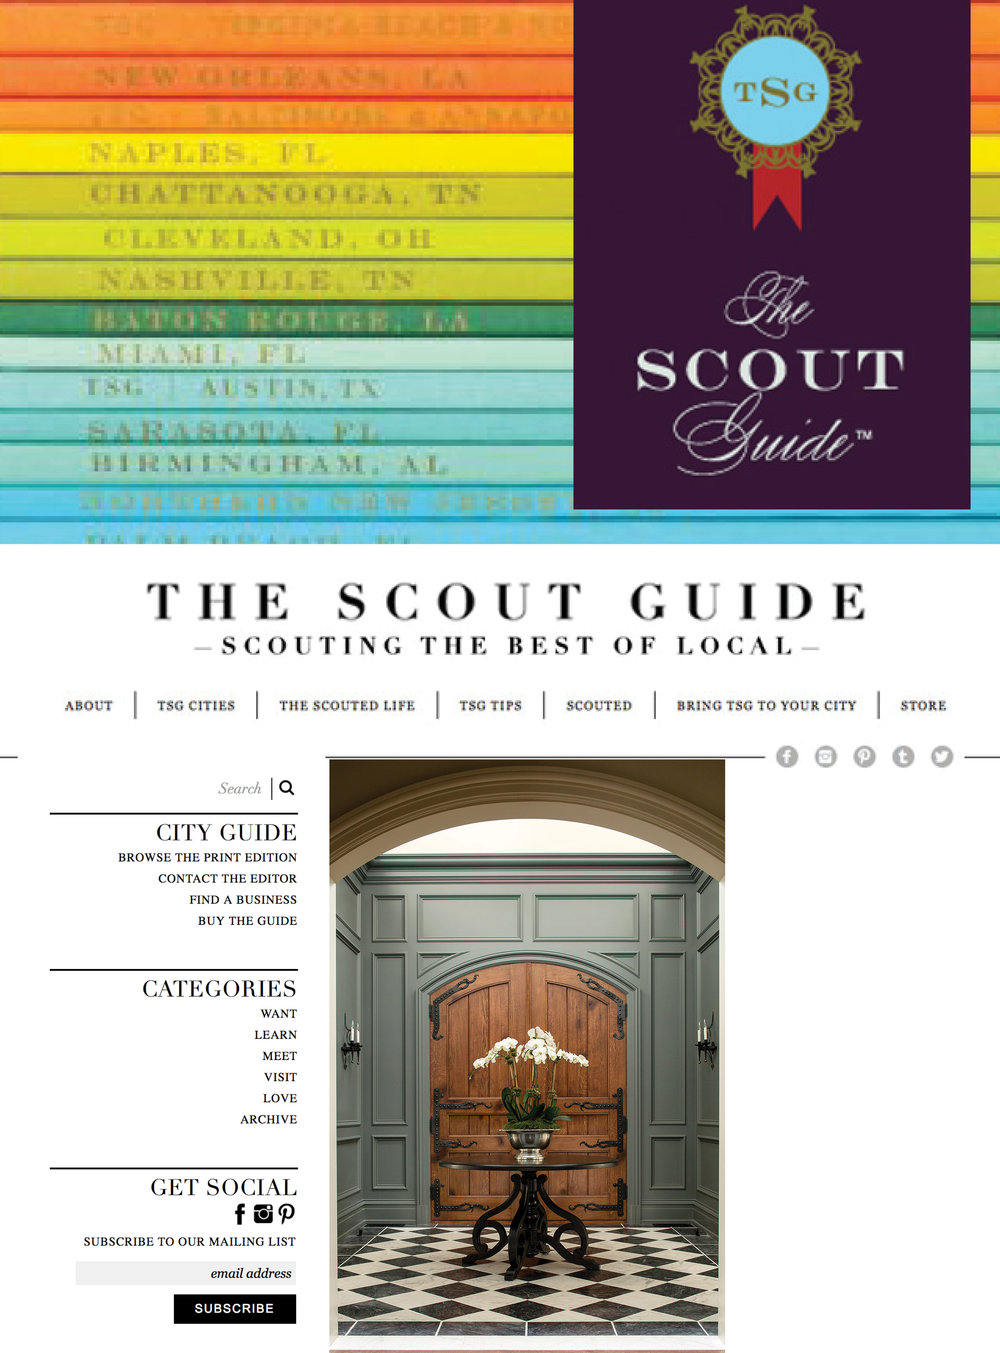 SUMMIT HOUSE TOUR. THE SCOUT GUIDE. 2017